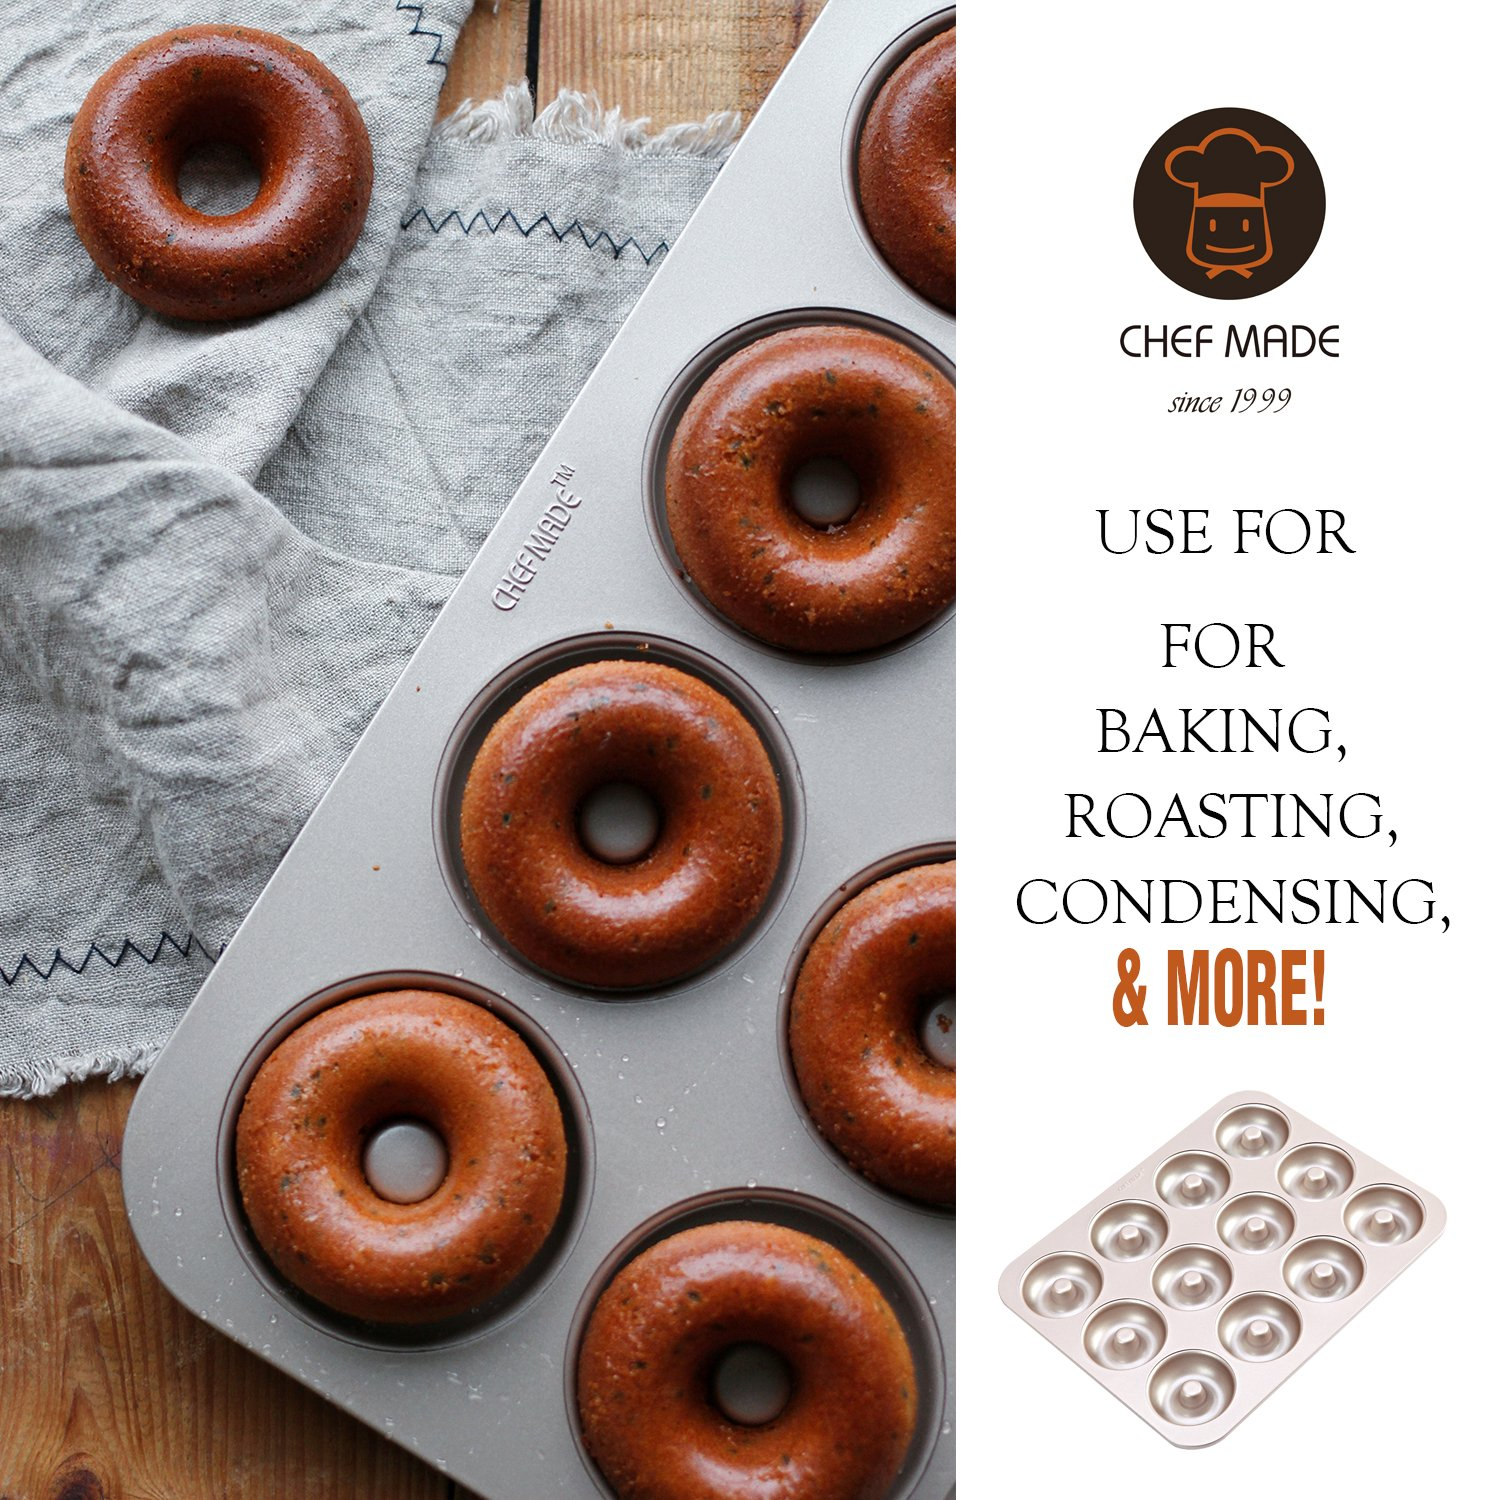 CHEFMADE Donut Mold Cake Pan, 12-Cavity Non-Stick Ring Doughnut Bakeware, FDA Approved for Oven Baking (Champagne Gold) by CHEFMADE (Image #3)